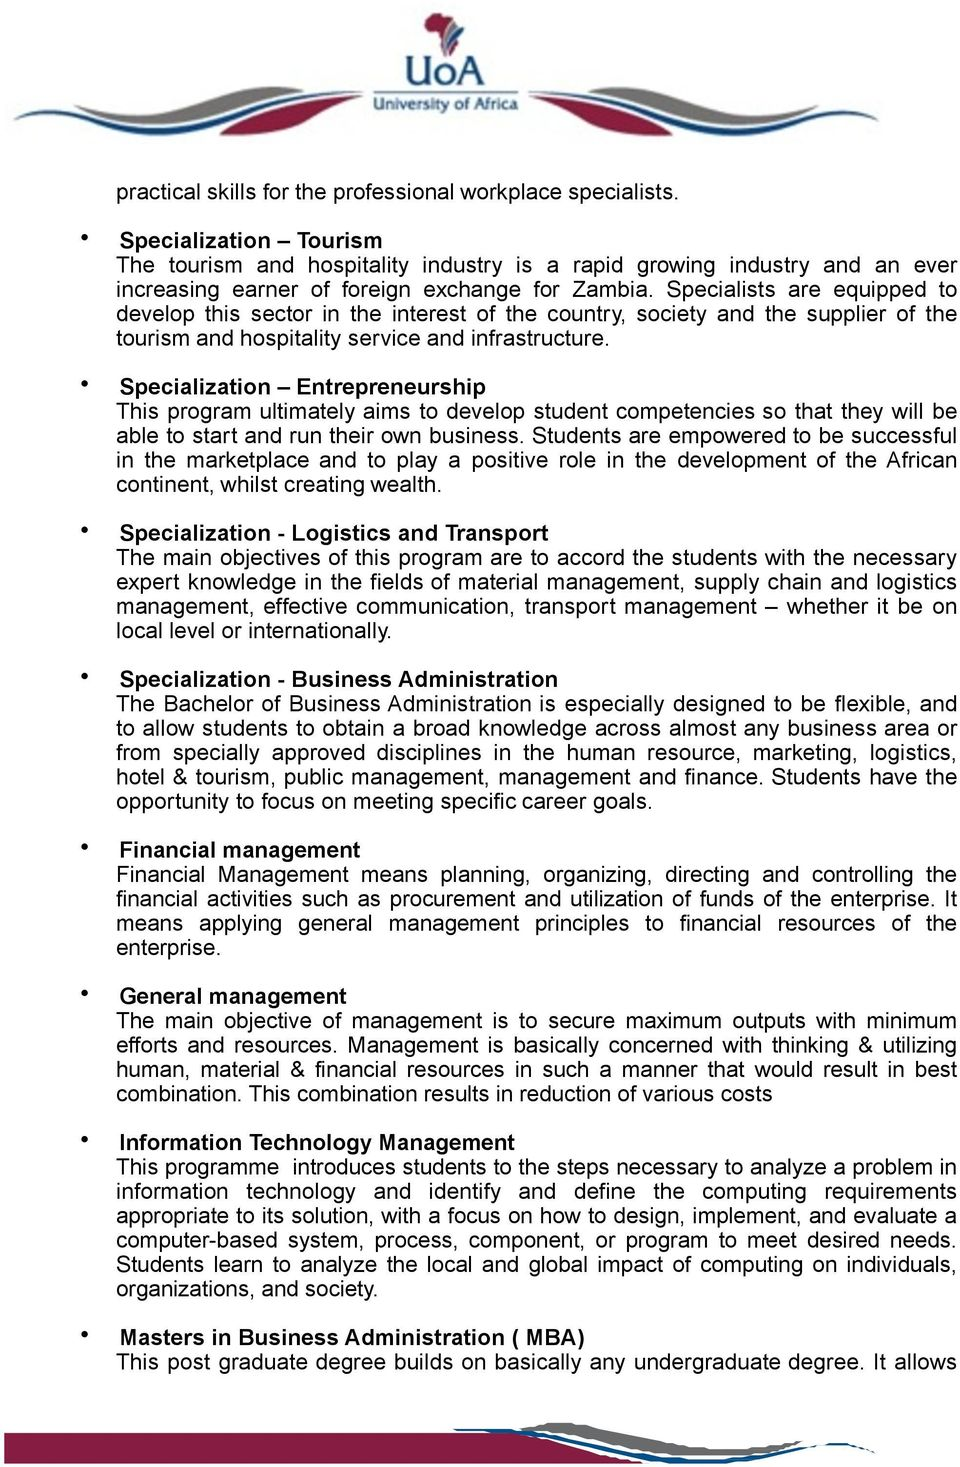 university of africa prospectus pdf specialists are equipped to develop this sector in the interest of the country society and